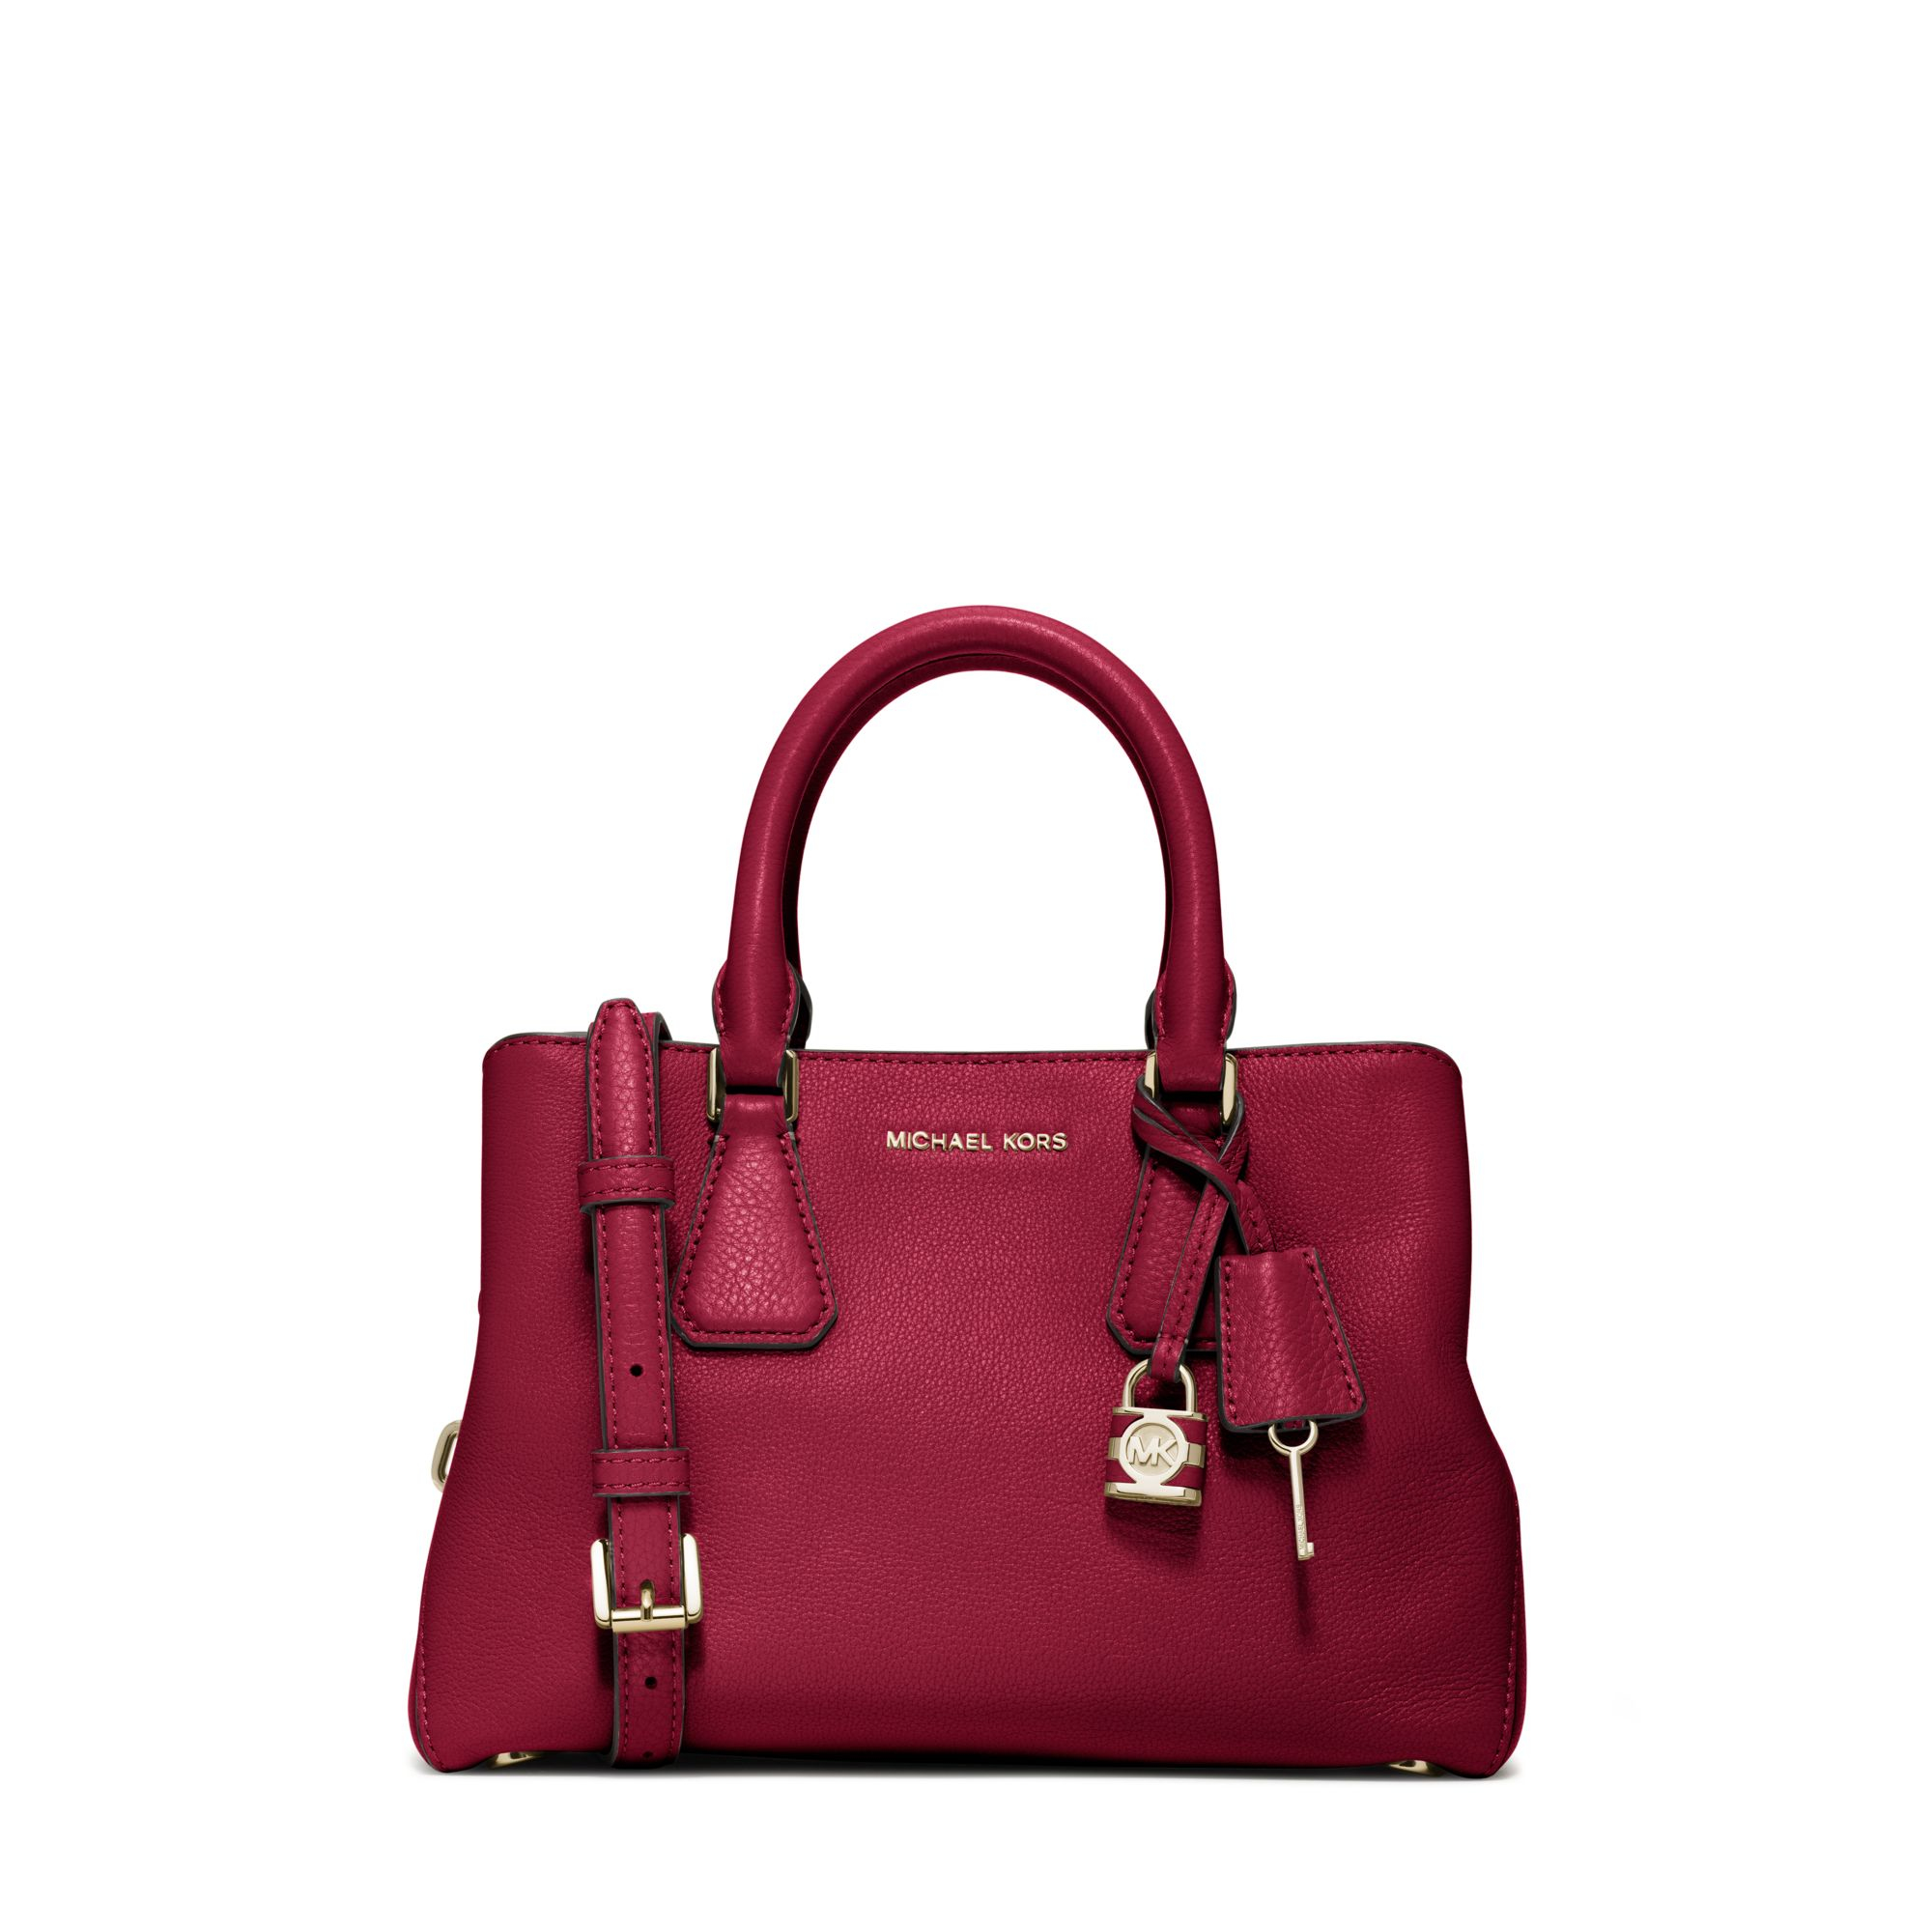 c681d2a06071 Michael Kors Camille Small Leather Satchel in Red - Lyst